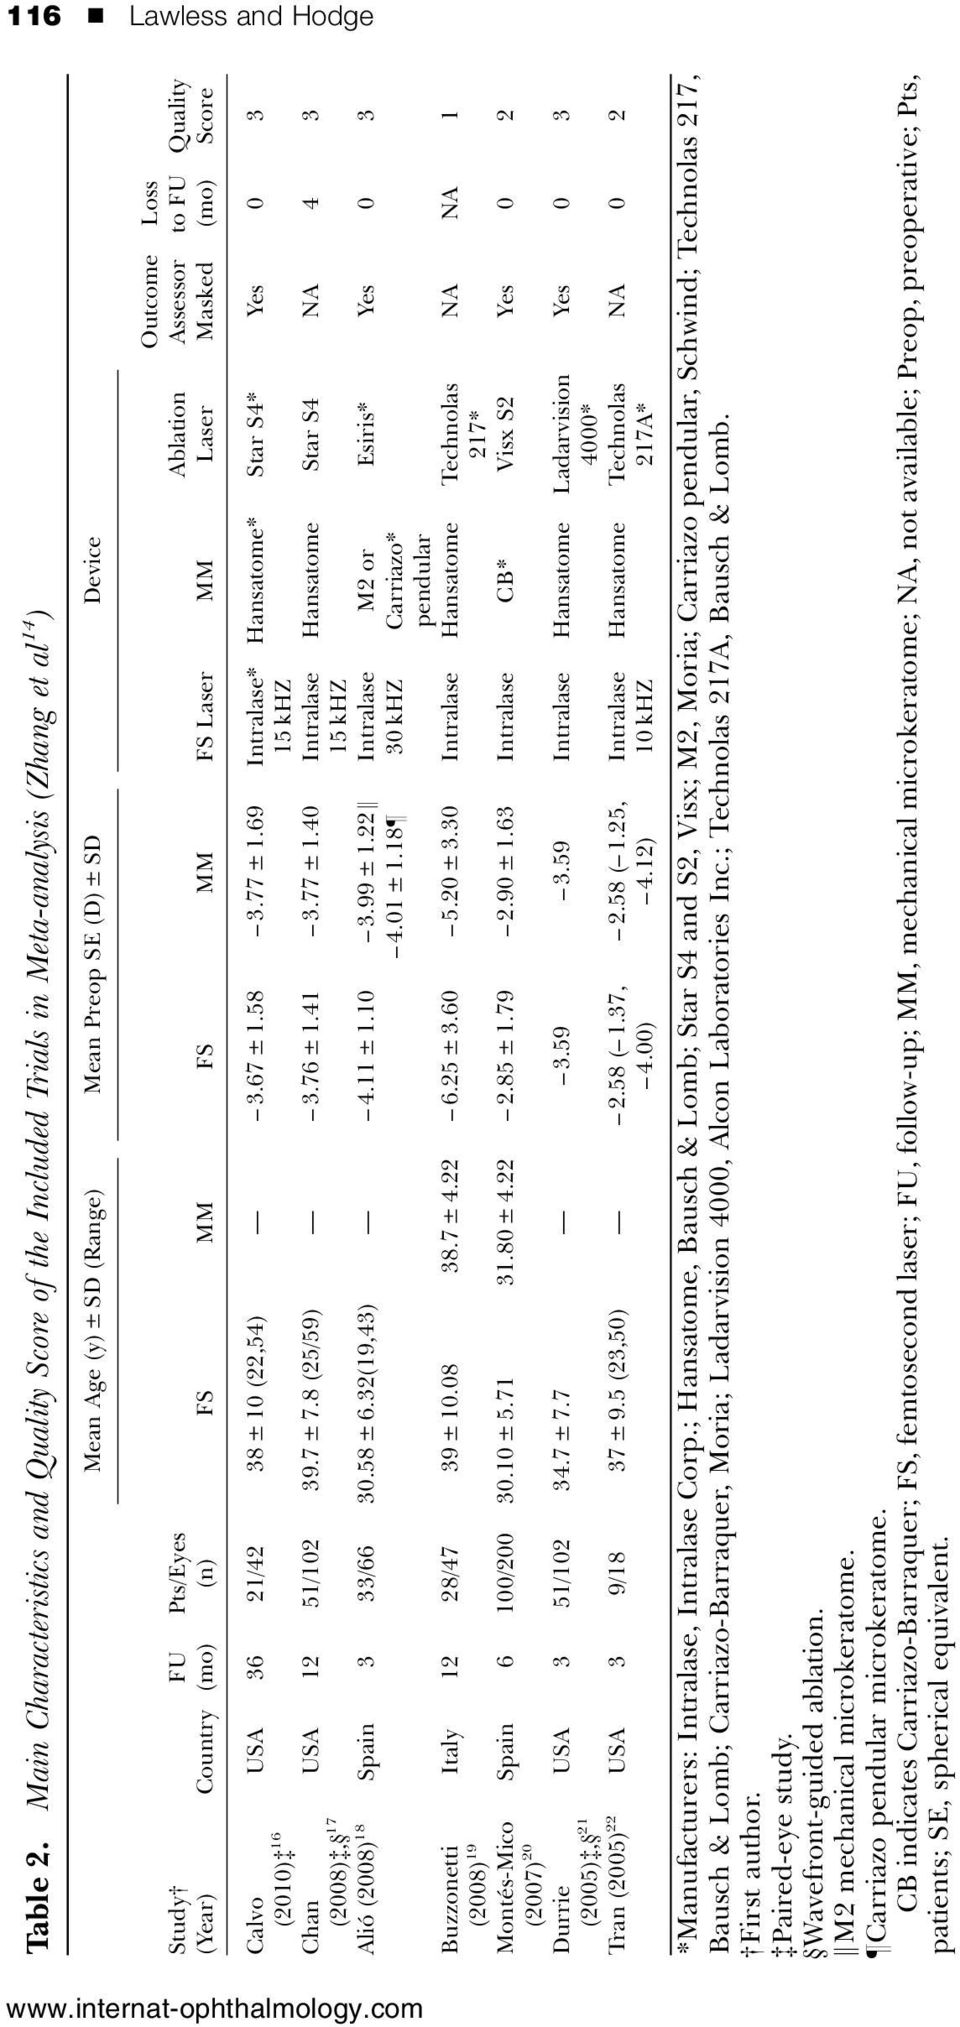 MM FS MM FS Laser MM Ablation Laser Outcome Assessor Masked Loss to FU (mo) Quality Score Calvo (2010)z 16 USA 36 21/42 38 ± 10 (22,54) 3.67 ± 1.58 3.77 ± 1.69 Intralase* 15 khz Chan USA 12 51/102 39.